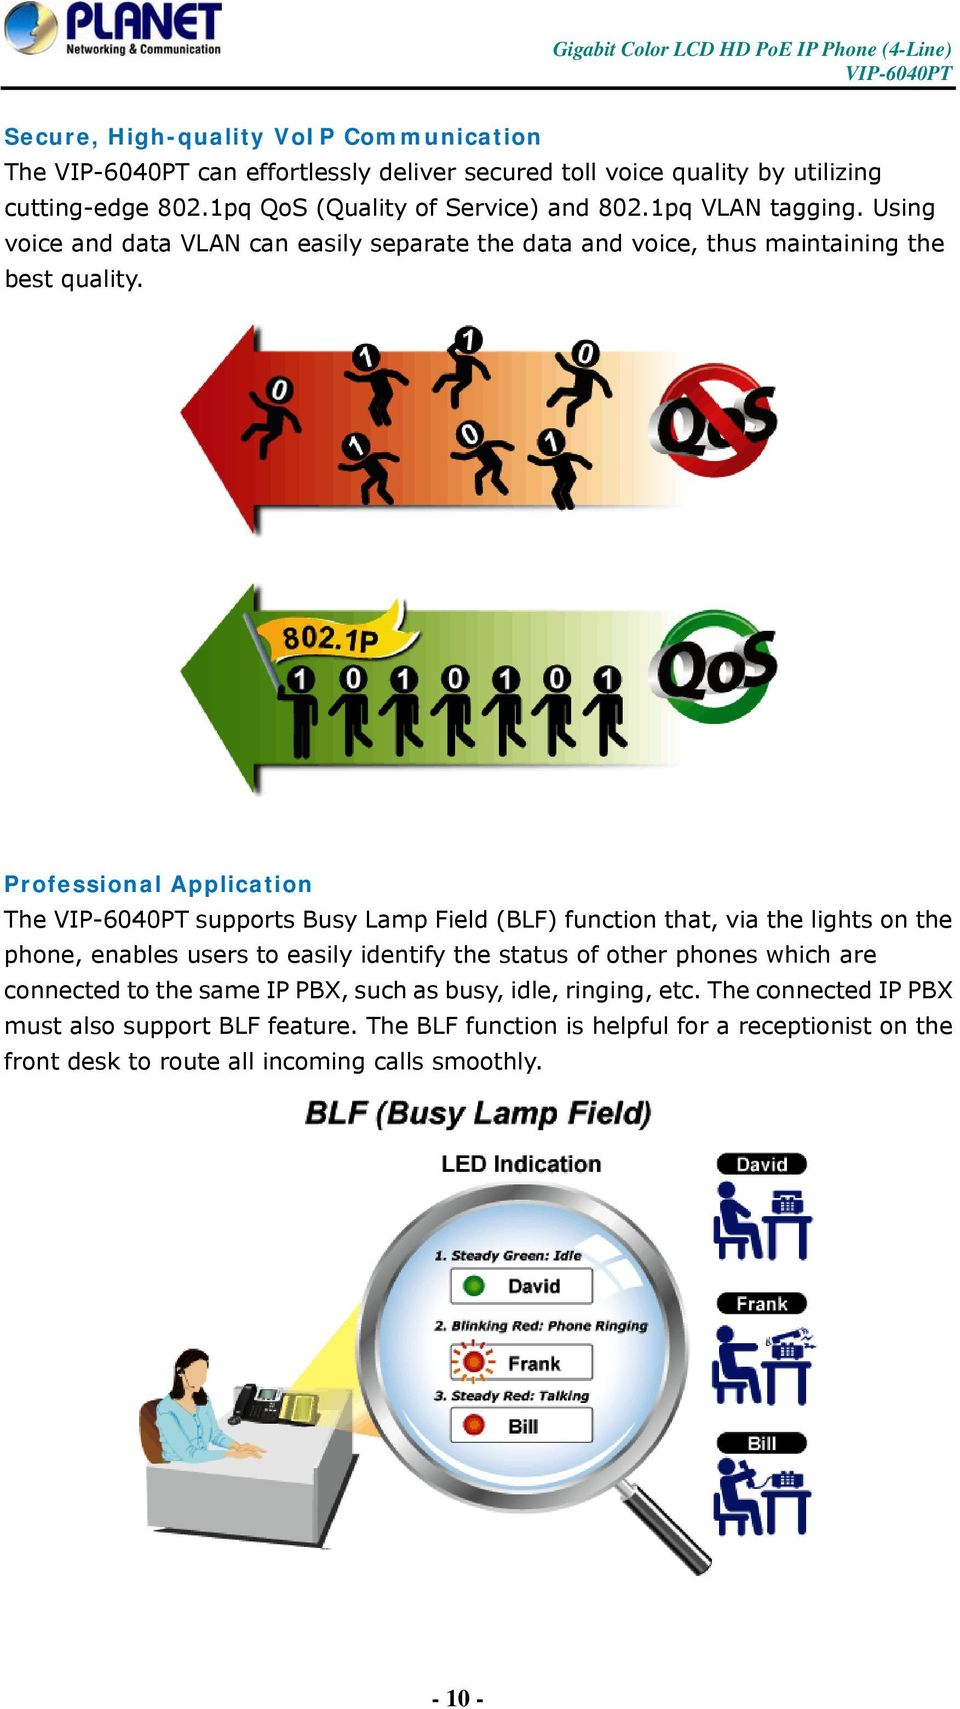 Professional Application The supports Busy Lamp Field (BLF) function that, via the lights on the phone, enables users to easily identify the status of other phones which